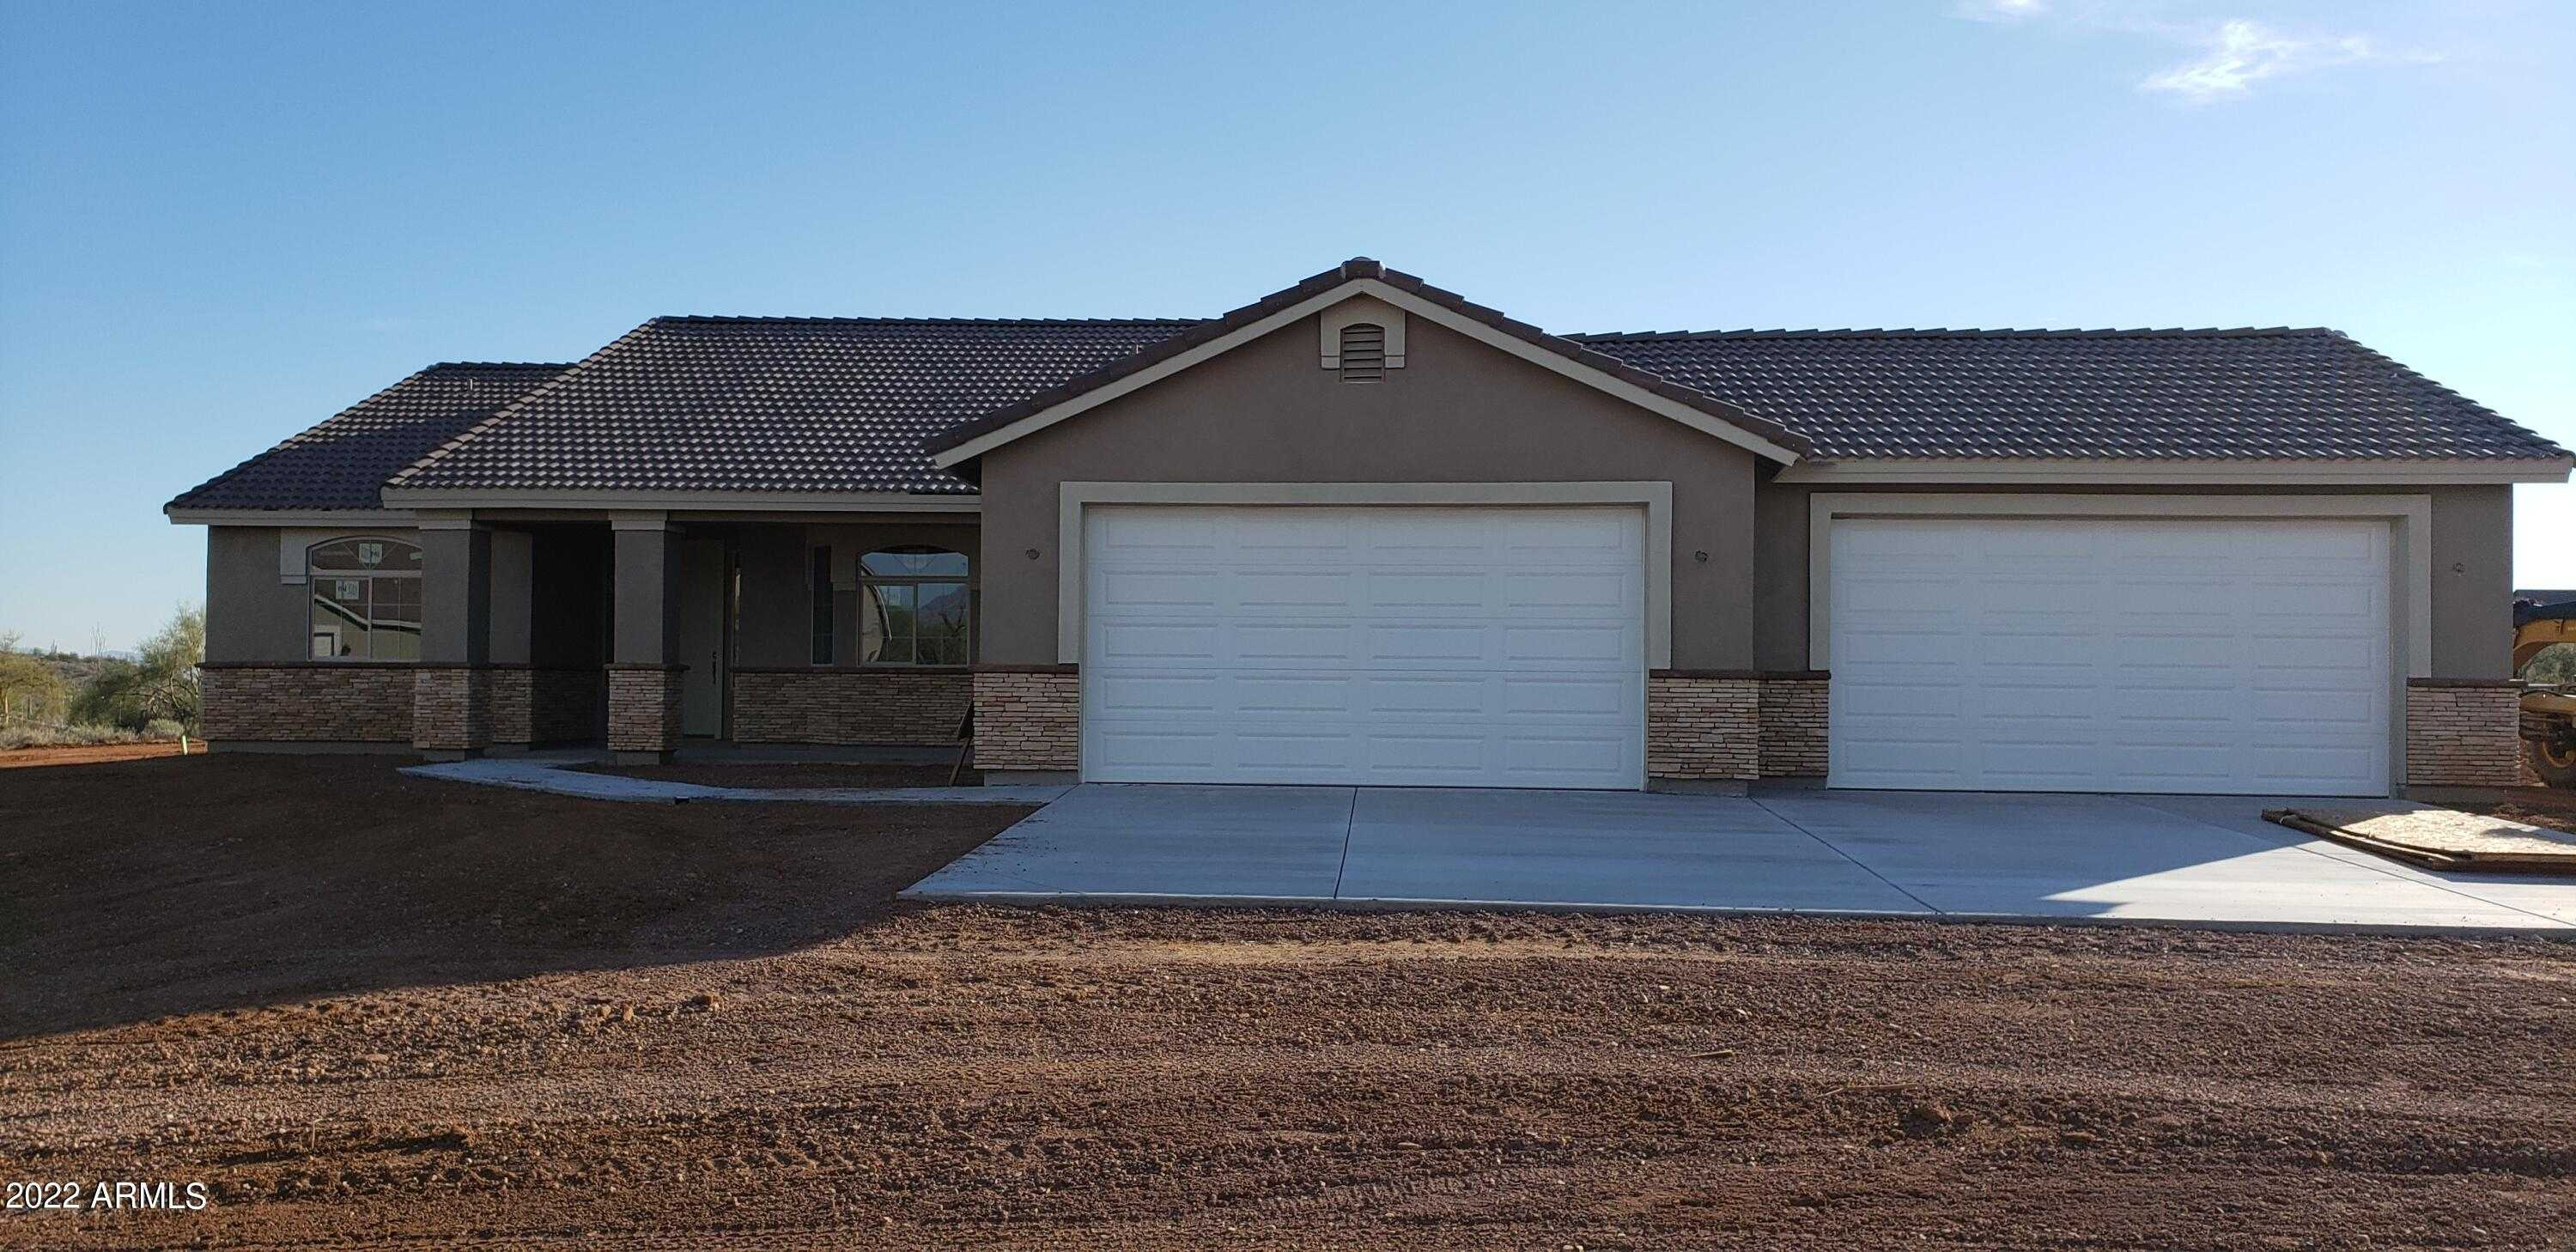 $643,900 - 4Br/2Ba - Home for Sale in Metes And Bounds, Scottsdale